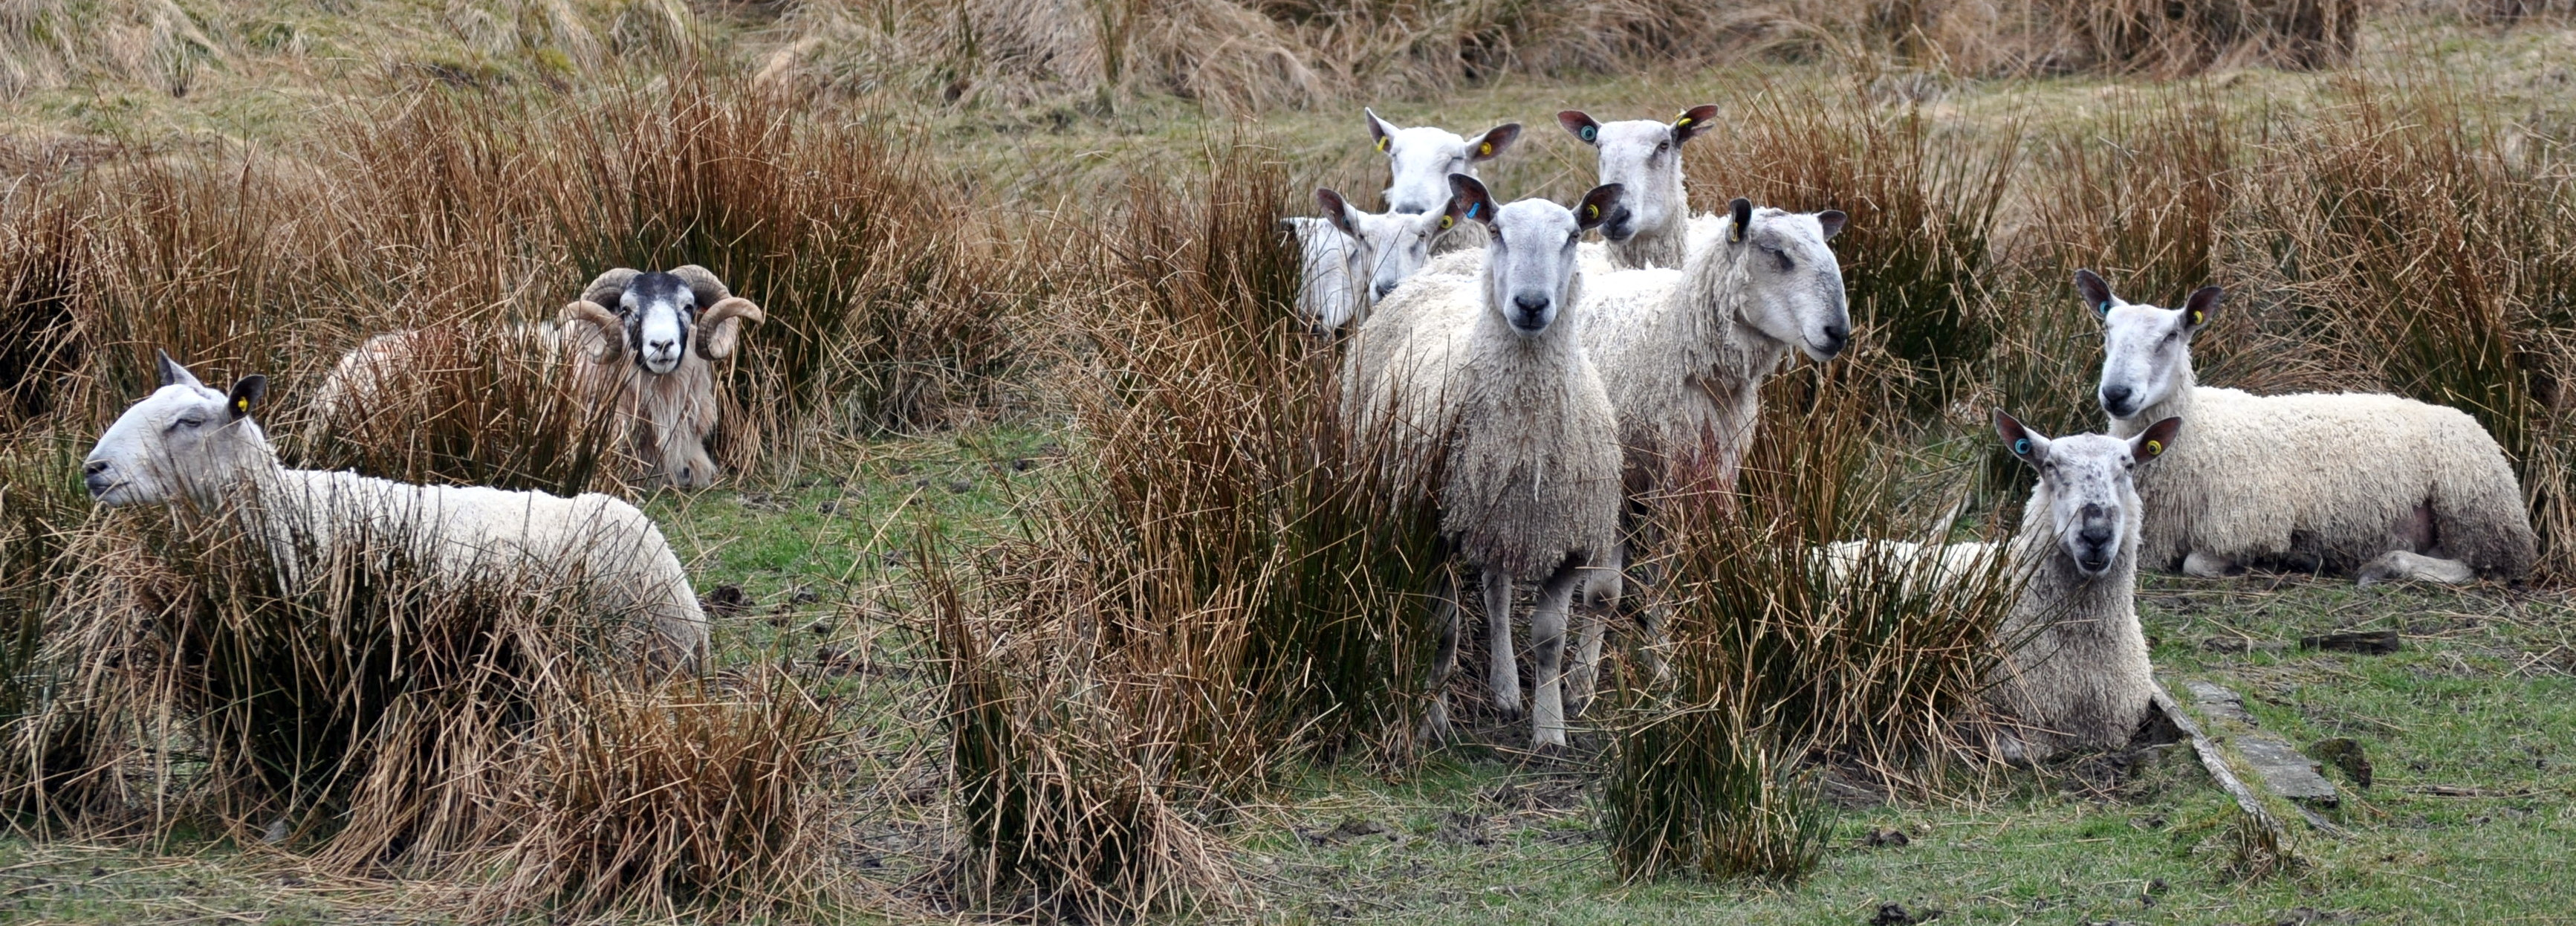 DOG OWNERS COULD FACE A £40,000 FINE OR 12 MONTHS JAIL FOR PETS ATTACKING SHEEP